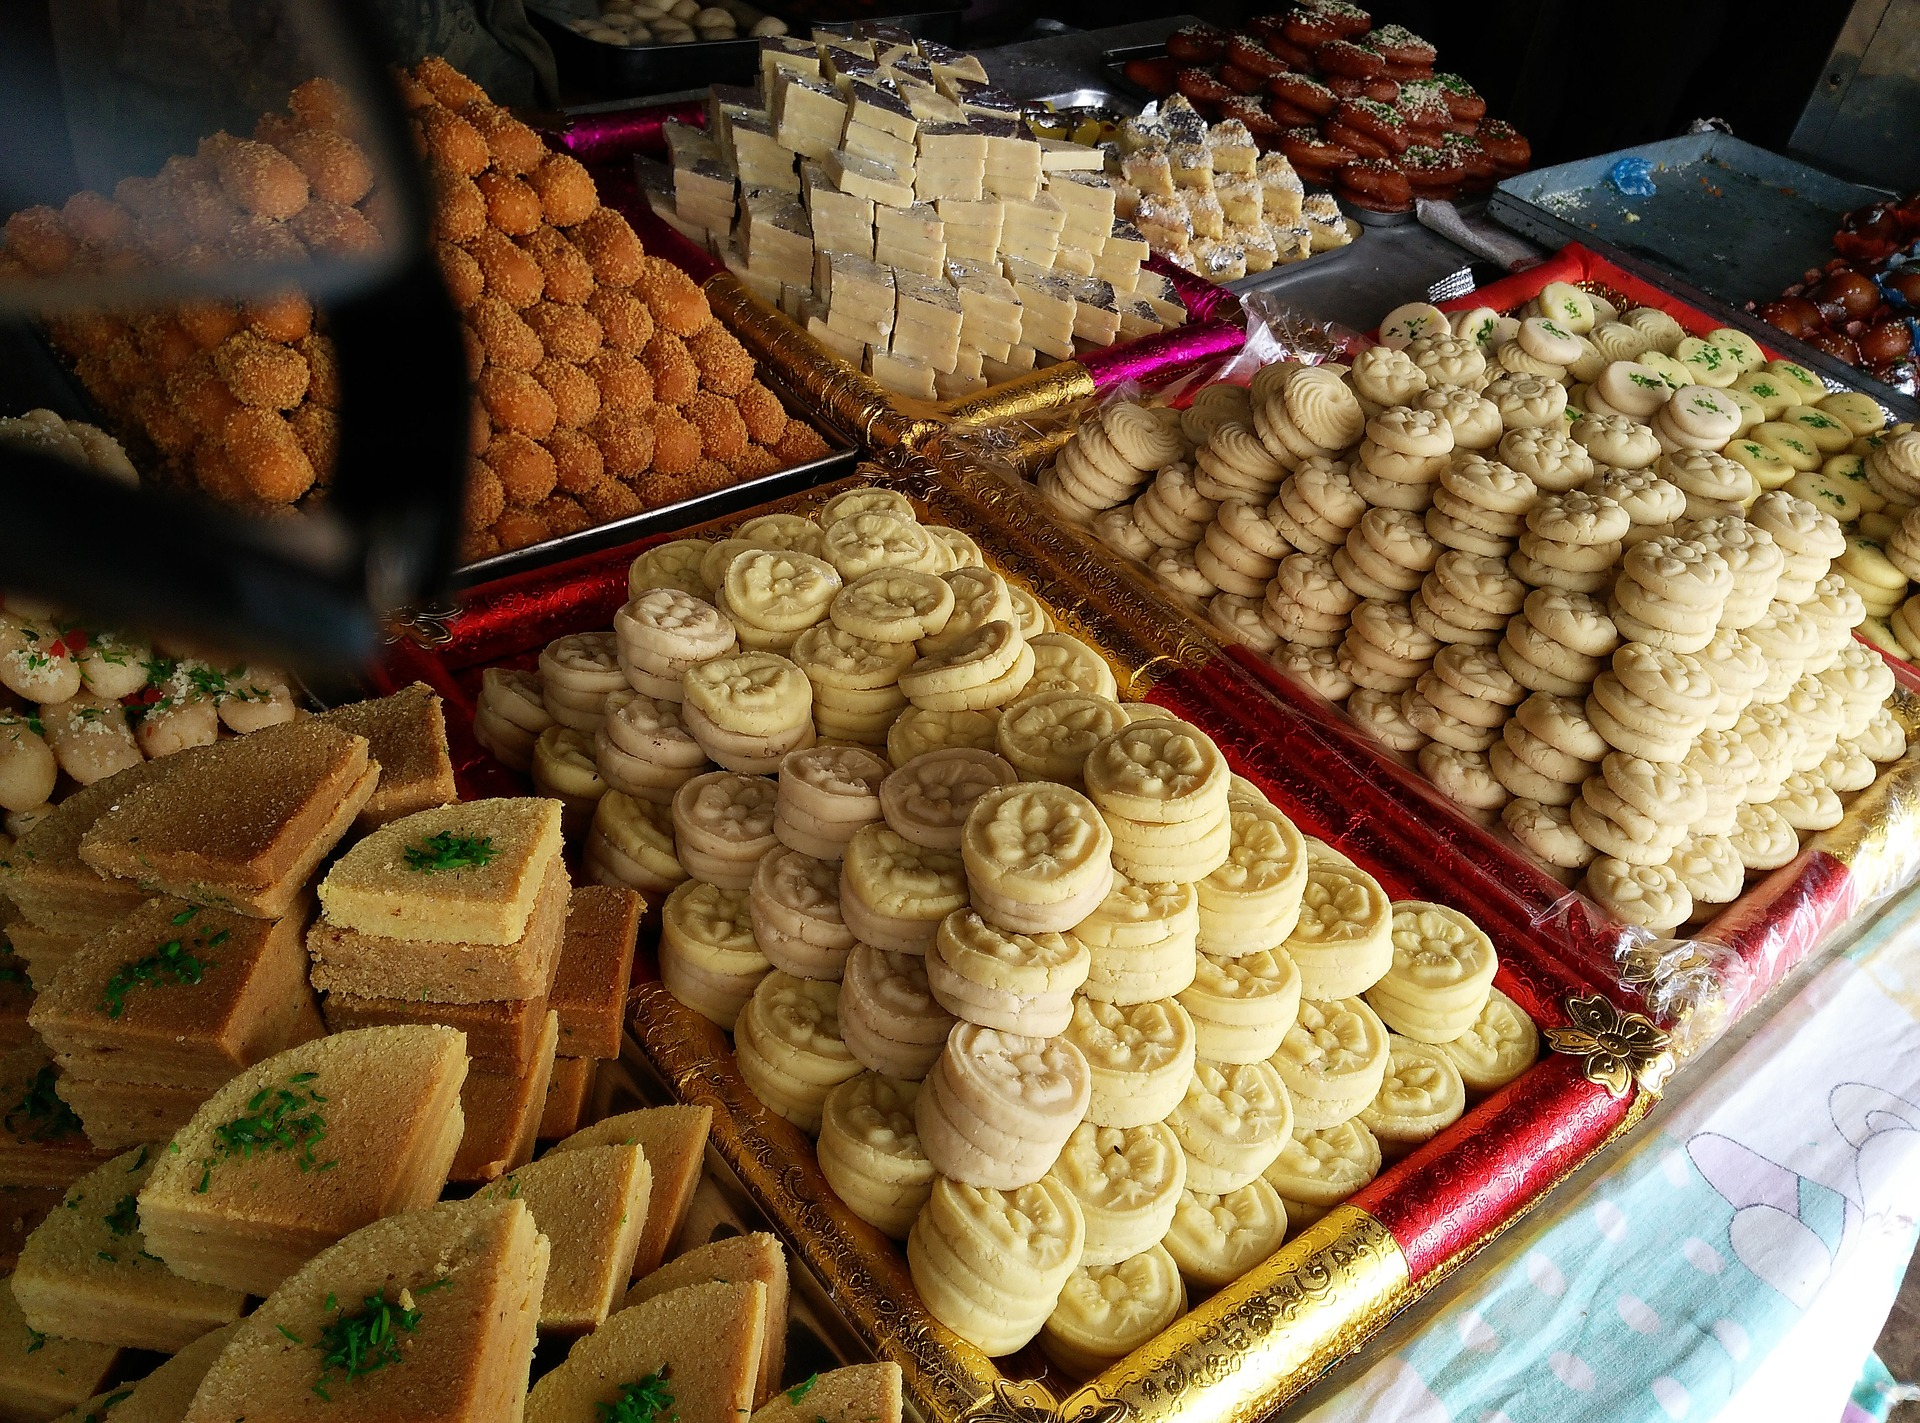 manek chowk bazaar-sweets all at an affordable price in ahmedabad